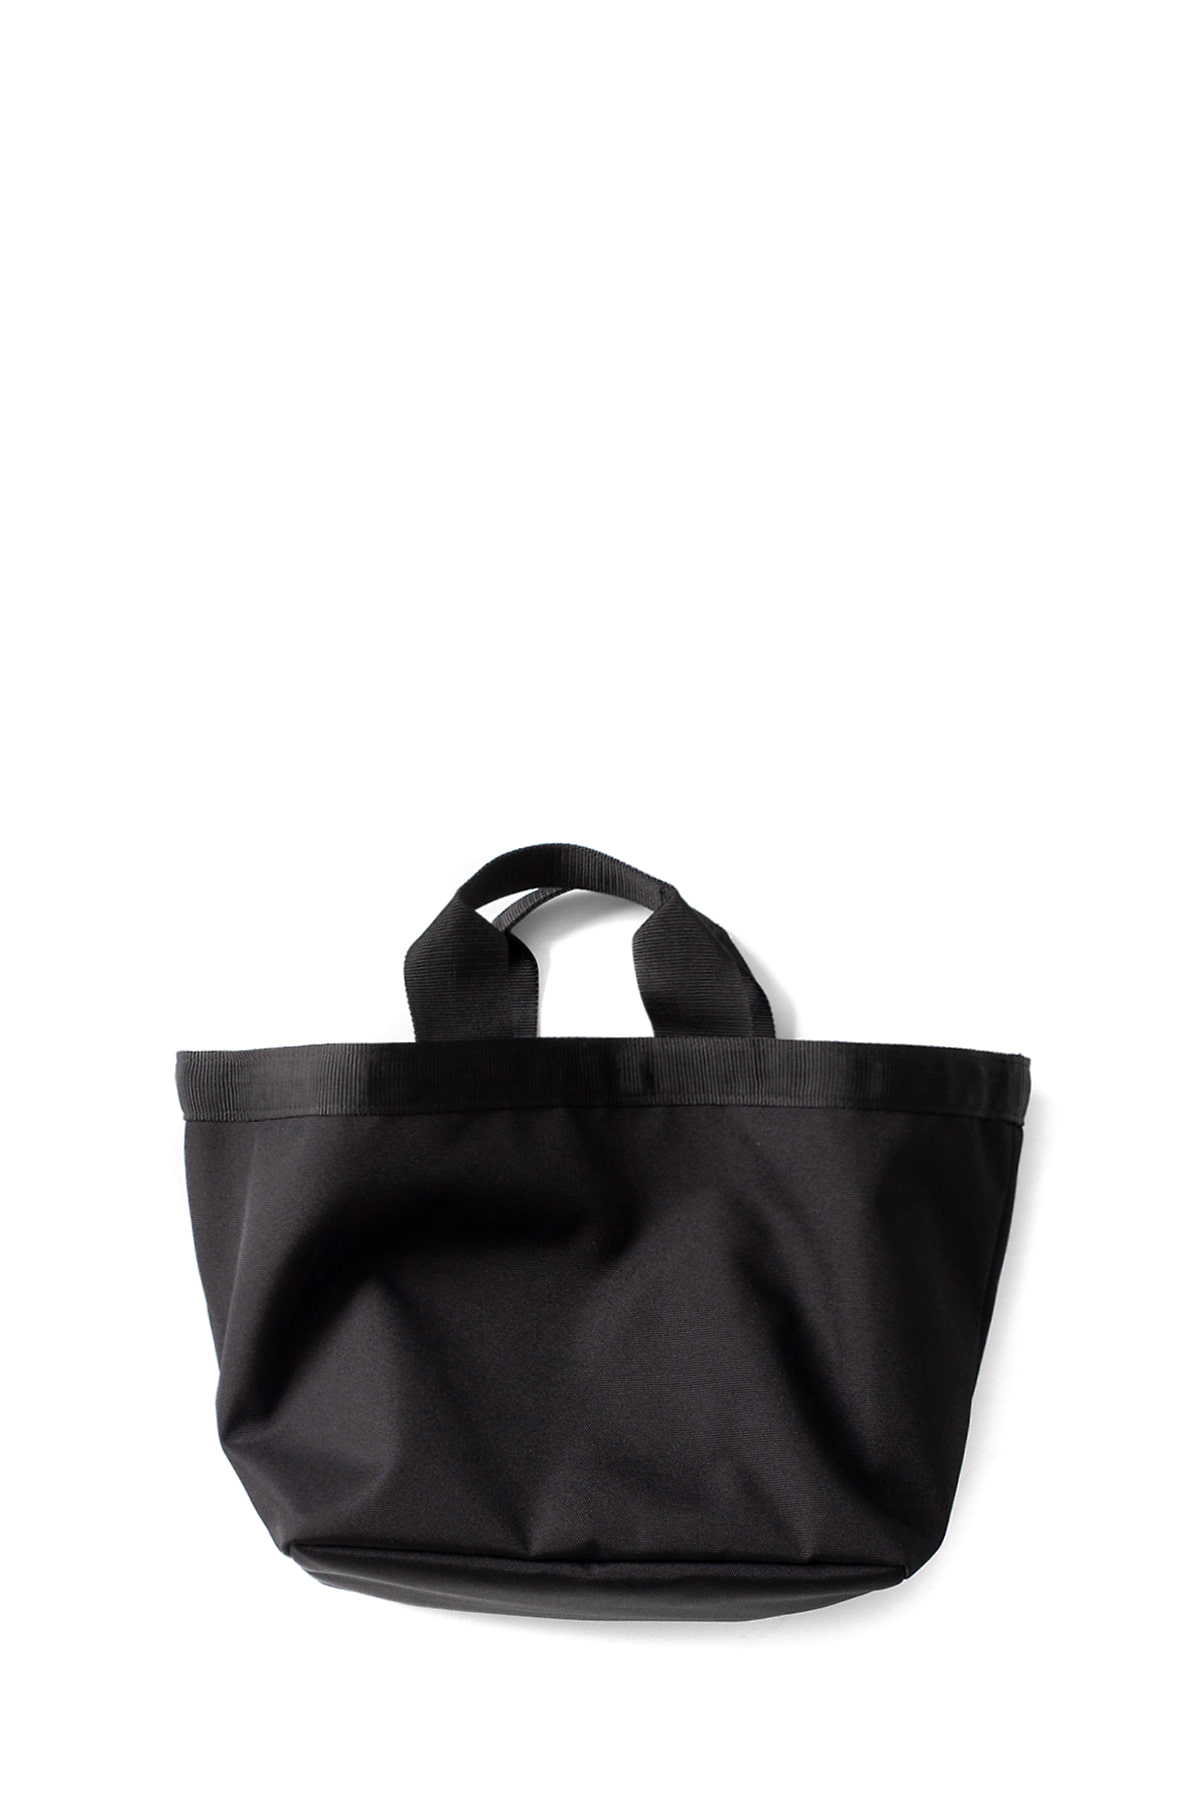 RINEN : Eco Made Canvas Tote Bag (Black)